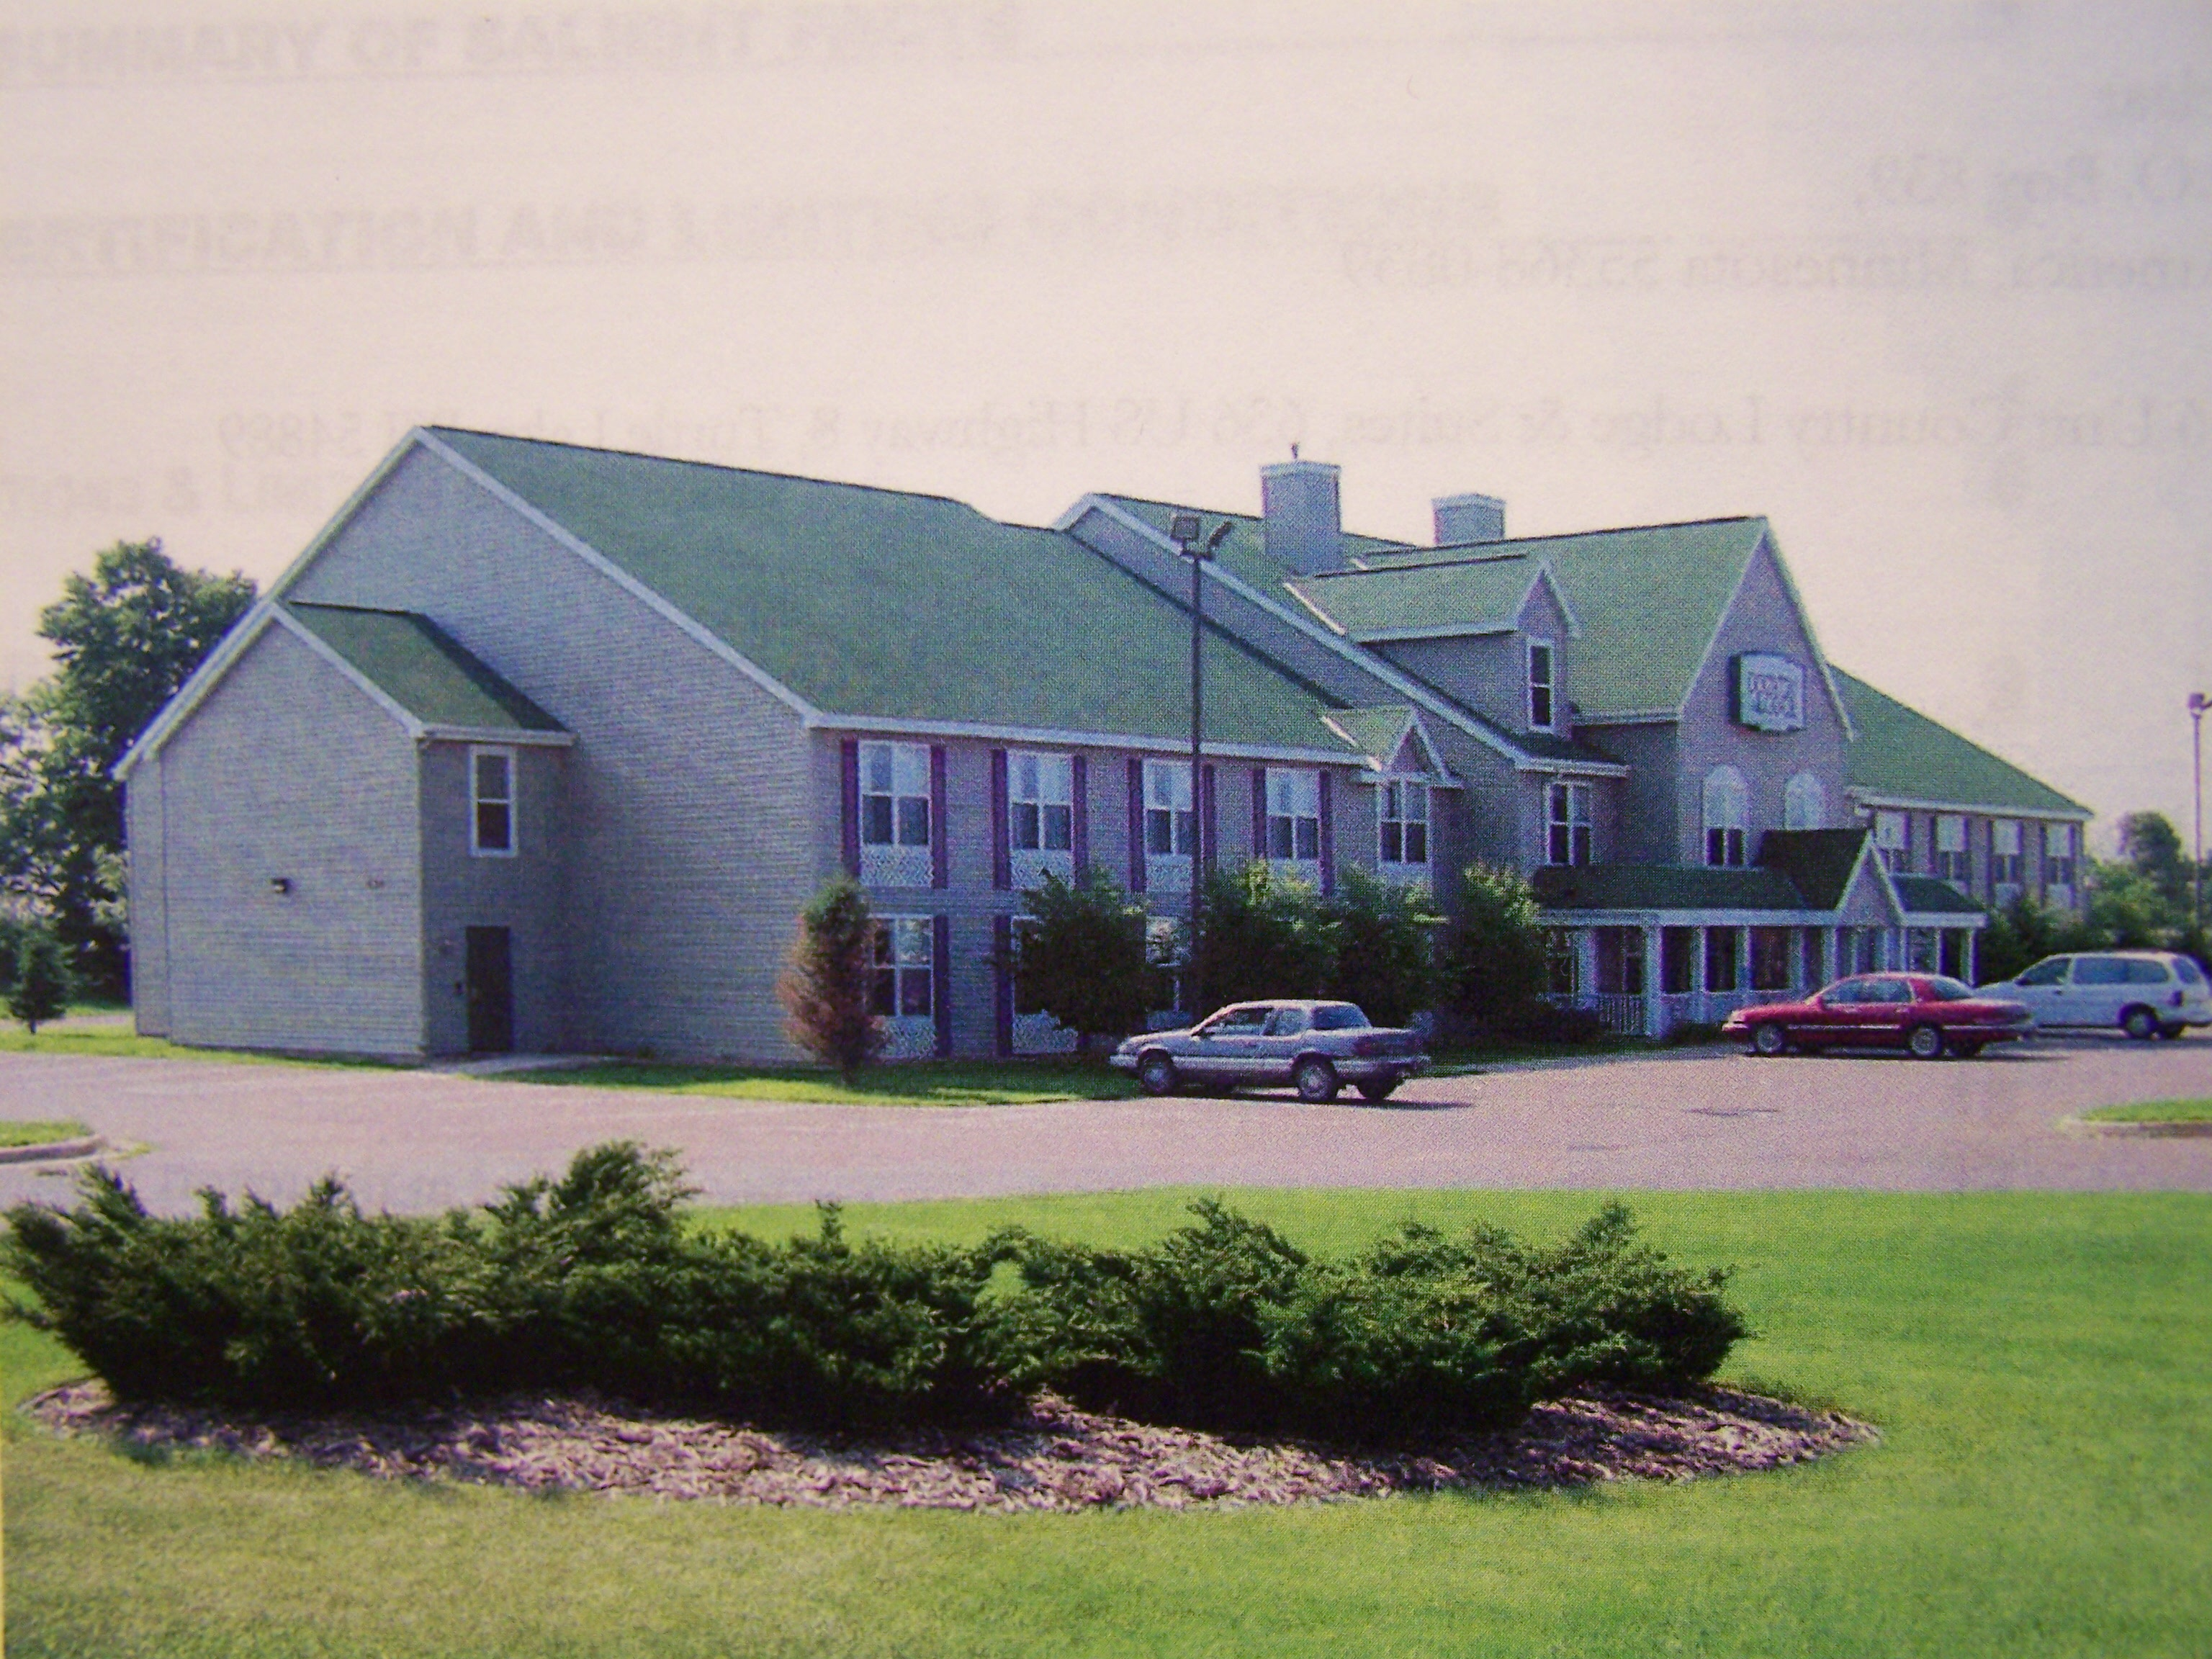 Country Lodge of Turtle Lake